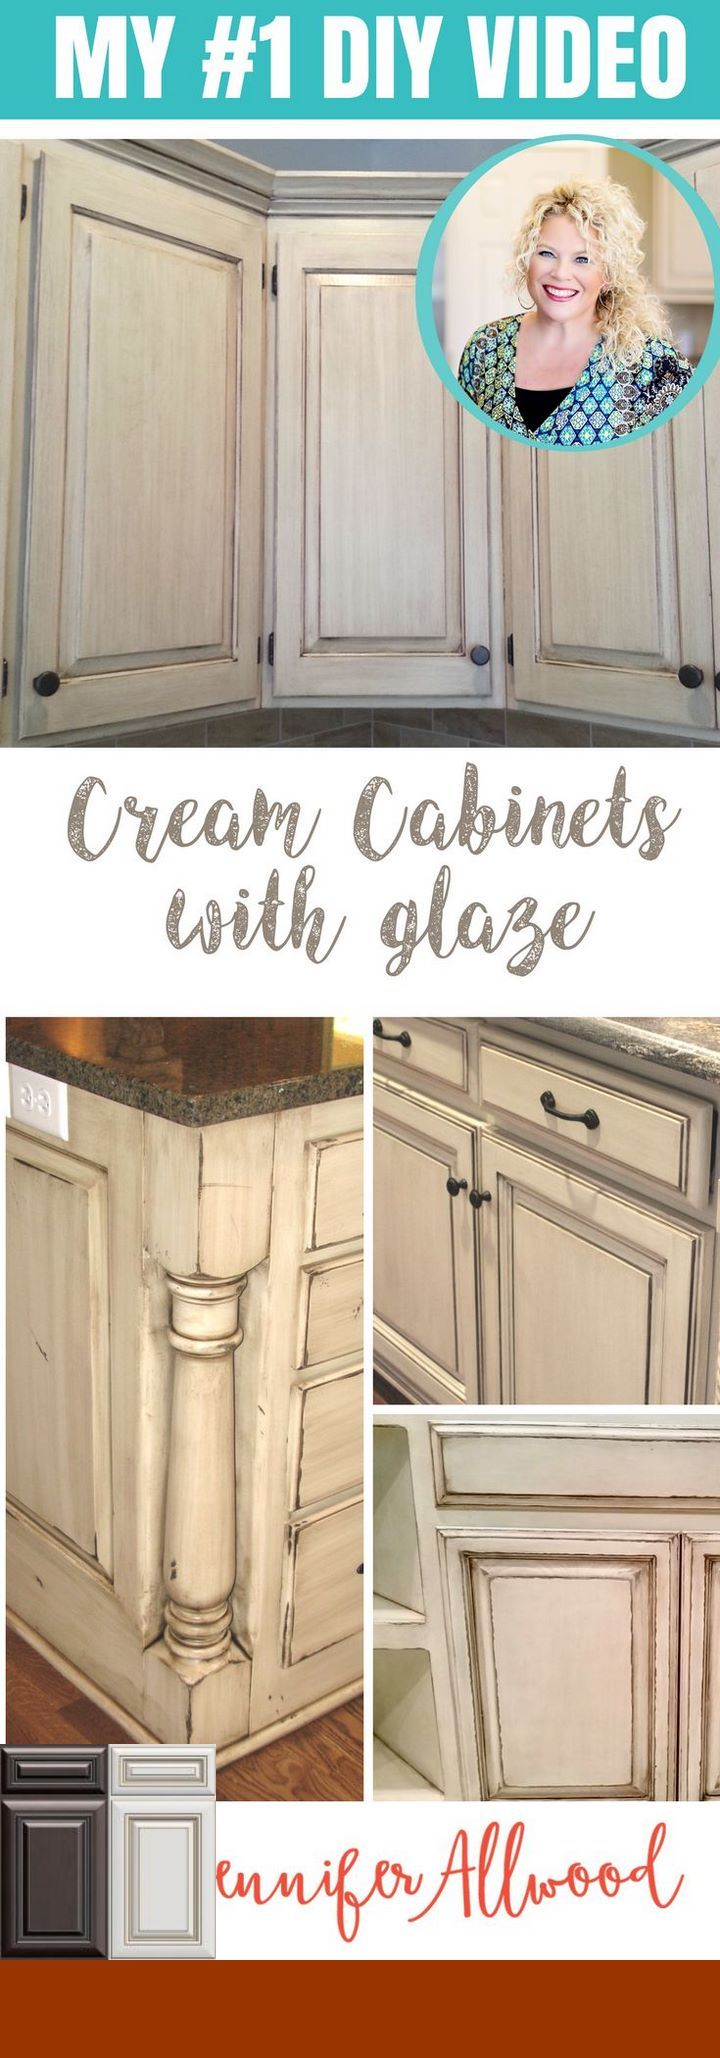 Kitchen Cabinet Organization Ideas Youtube Binets Kitchencabinets Chic Kitchen Shabby Chic Kitchen Painting Cabinets